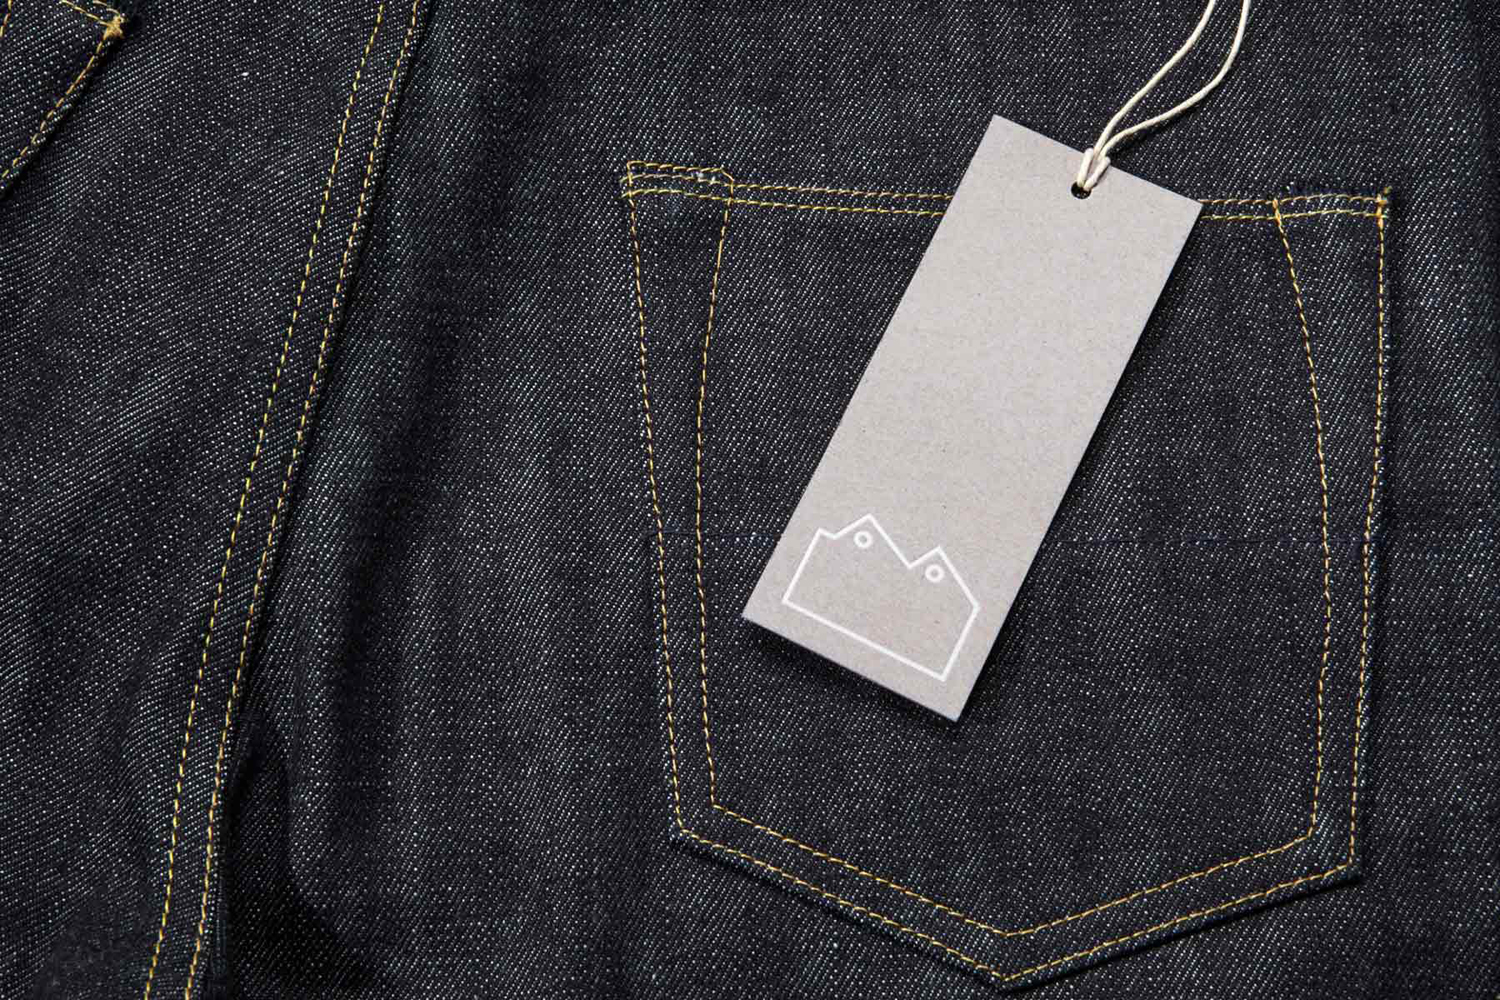 Logo and tag design by StudioSmall for premium selvedge and organic raw denim jeans brand Blackhorse Lane Ateliers.